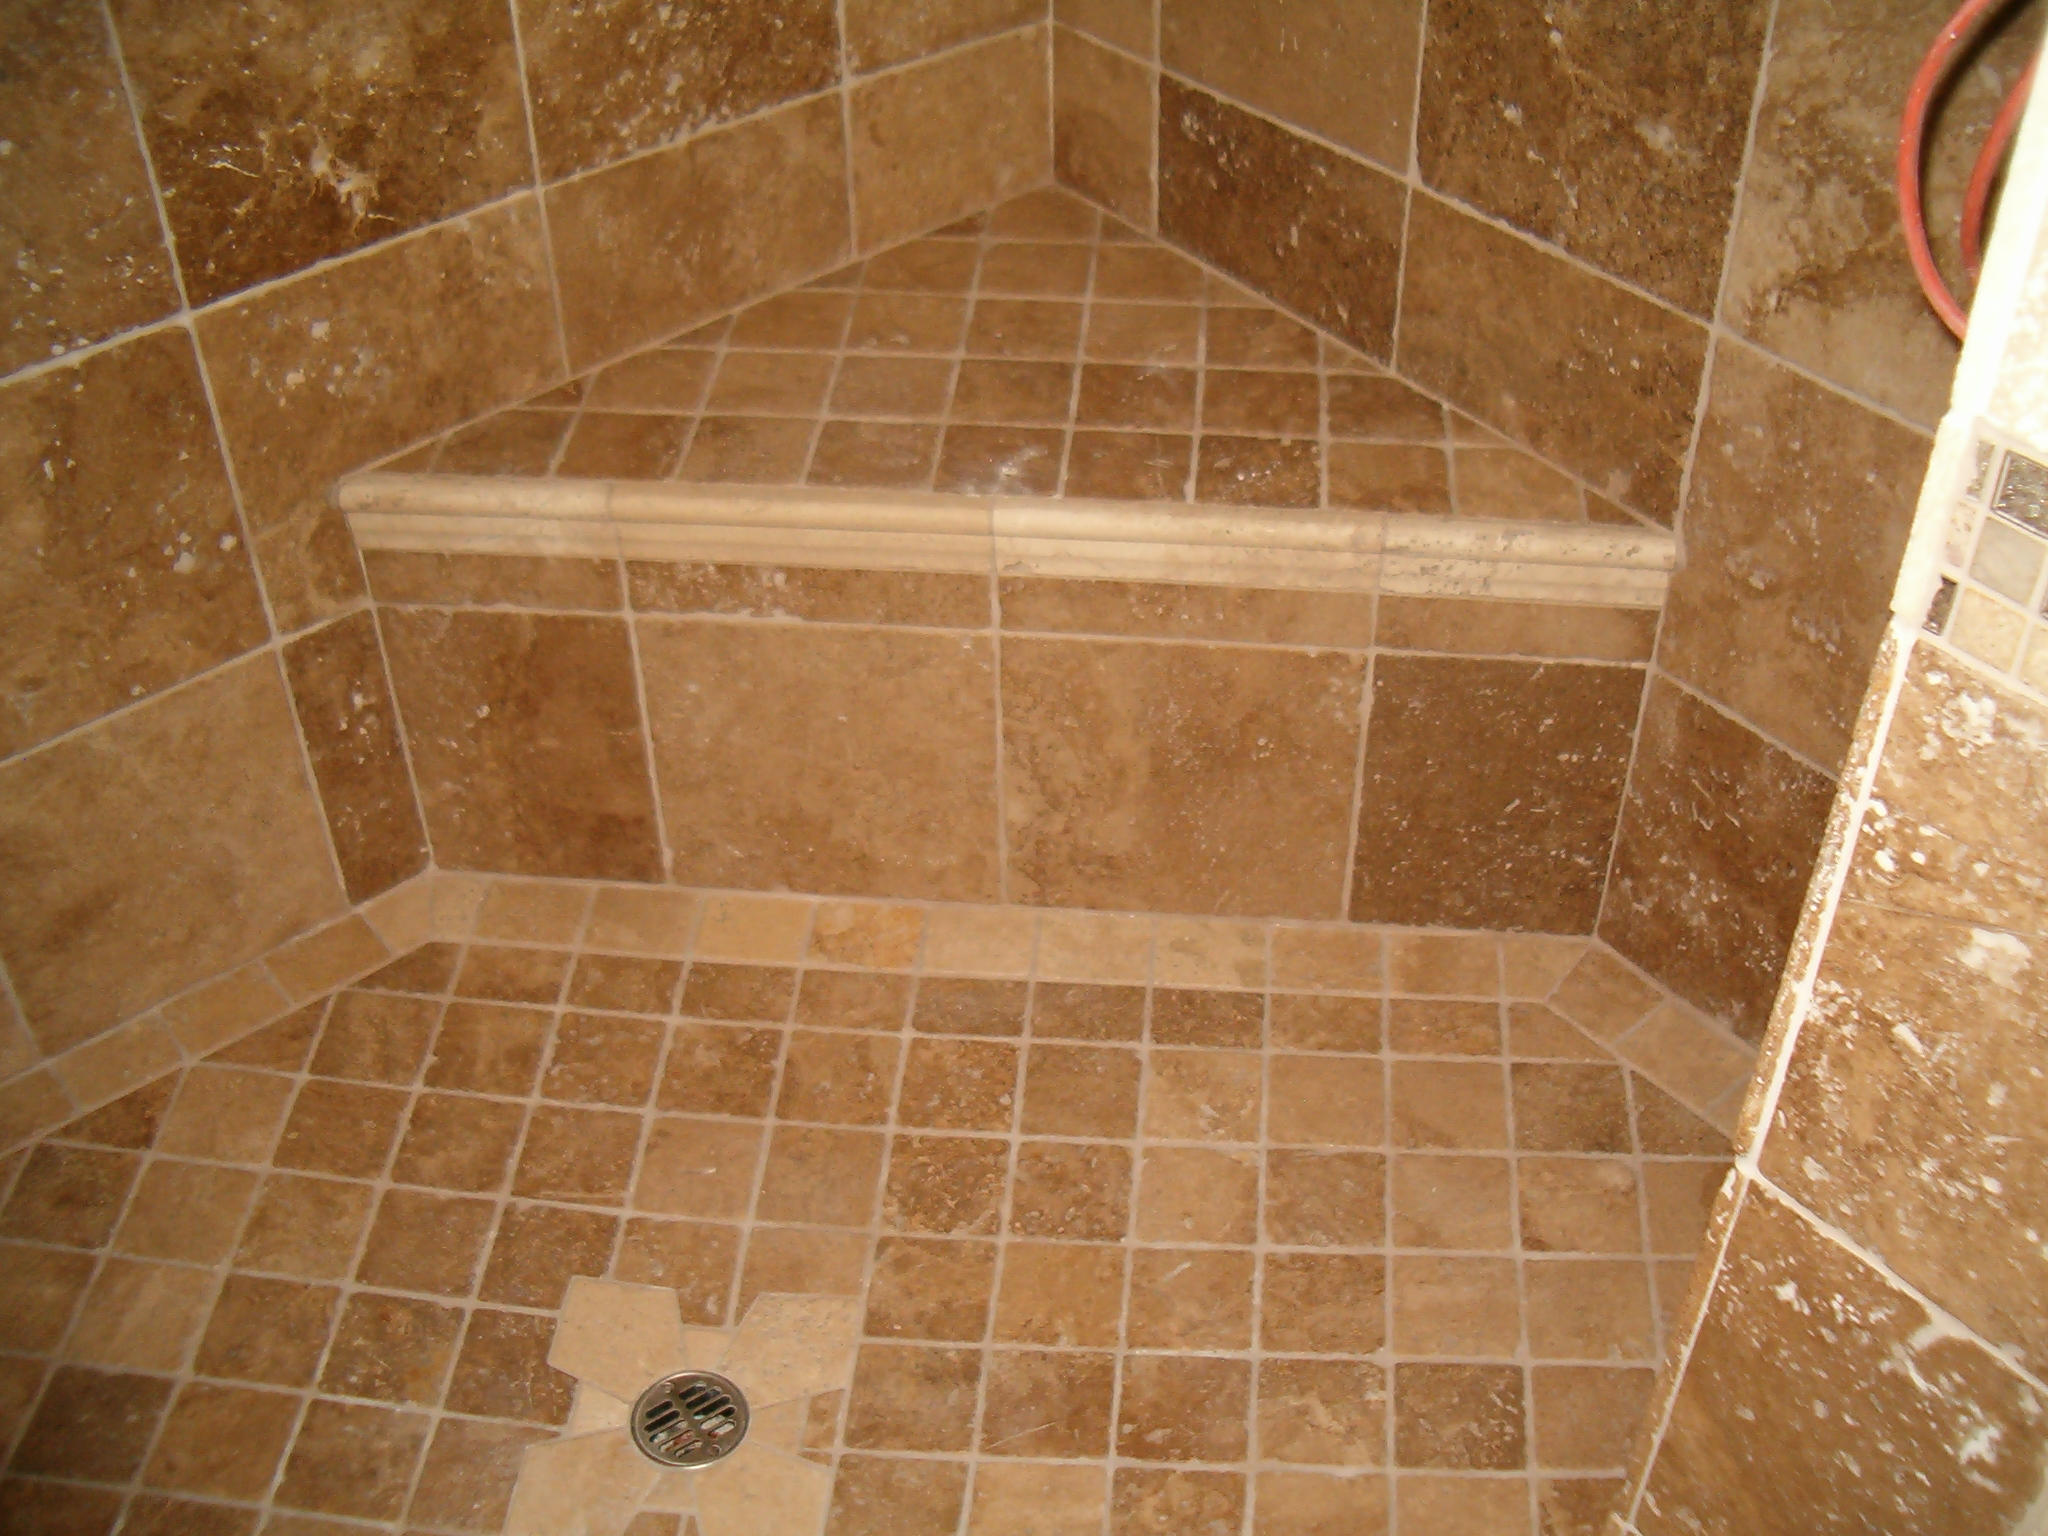 Shower anatomy for Bathroom tile flooring designs